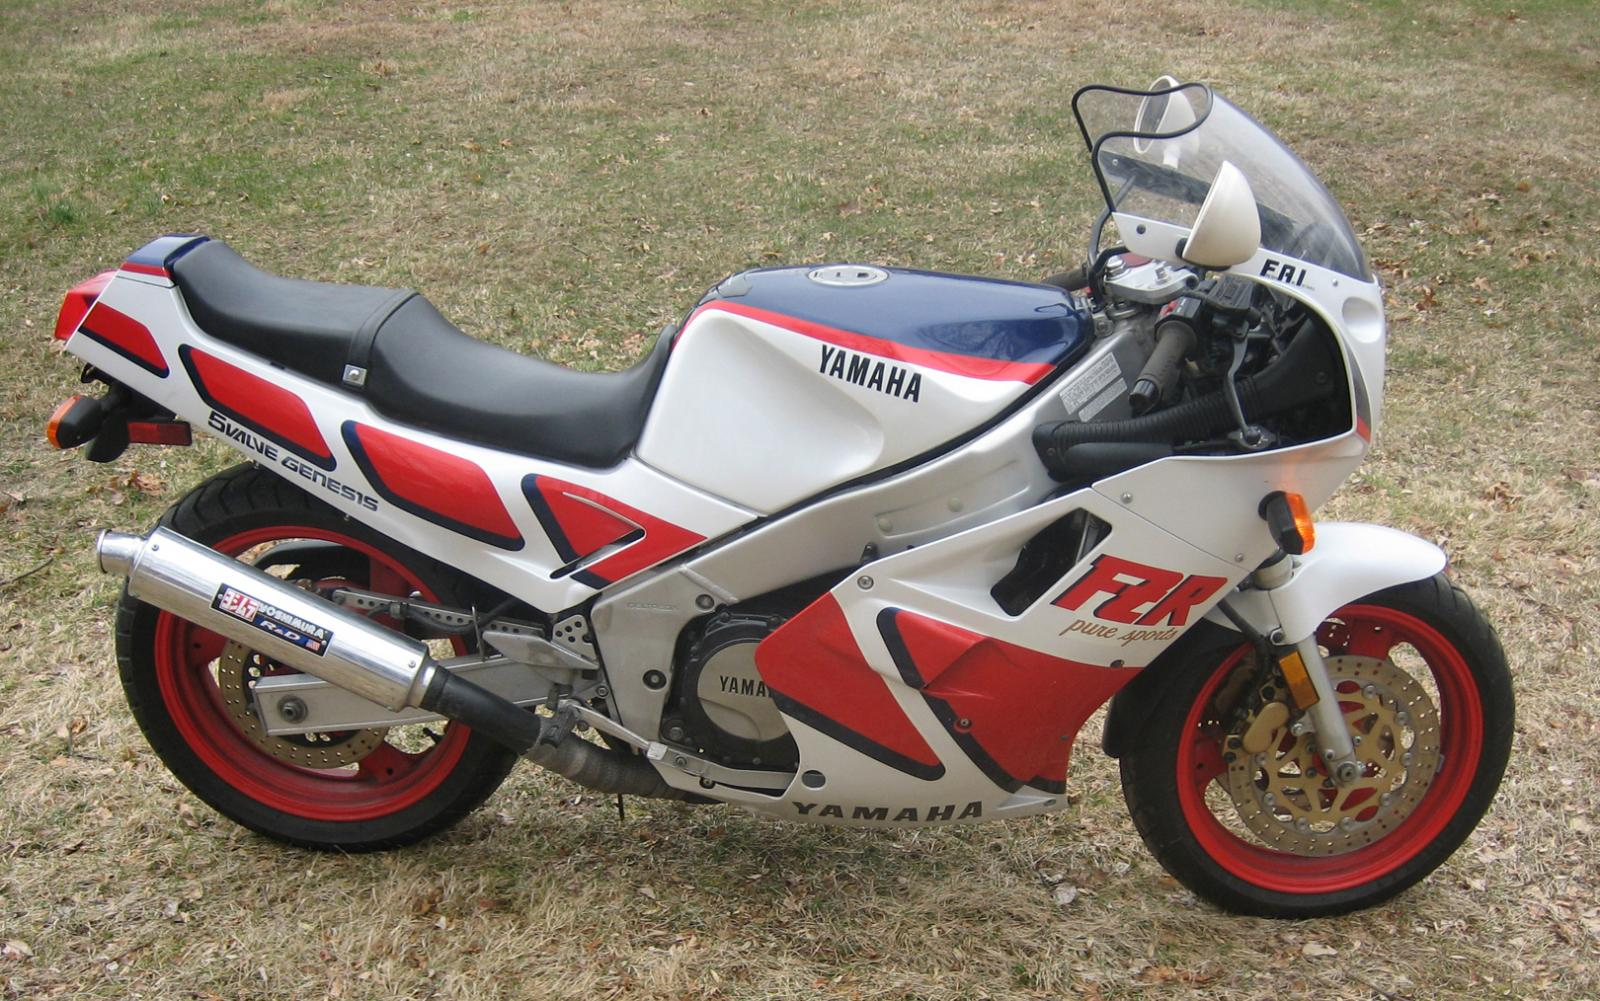 Sci also Xt R Wiring Loom P further Honda Sc Cbr F Open Lgw furthermore Yamaha Fzr X W together with . on yamaha fzr 1000 engine parts